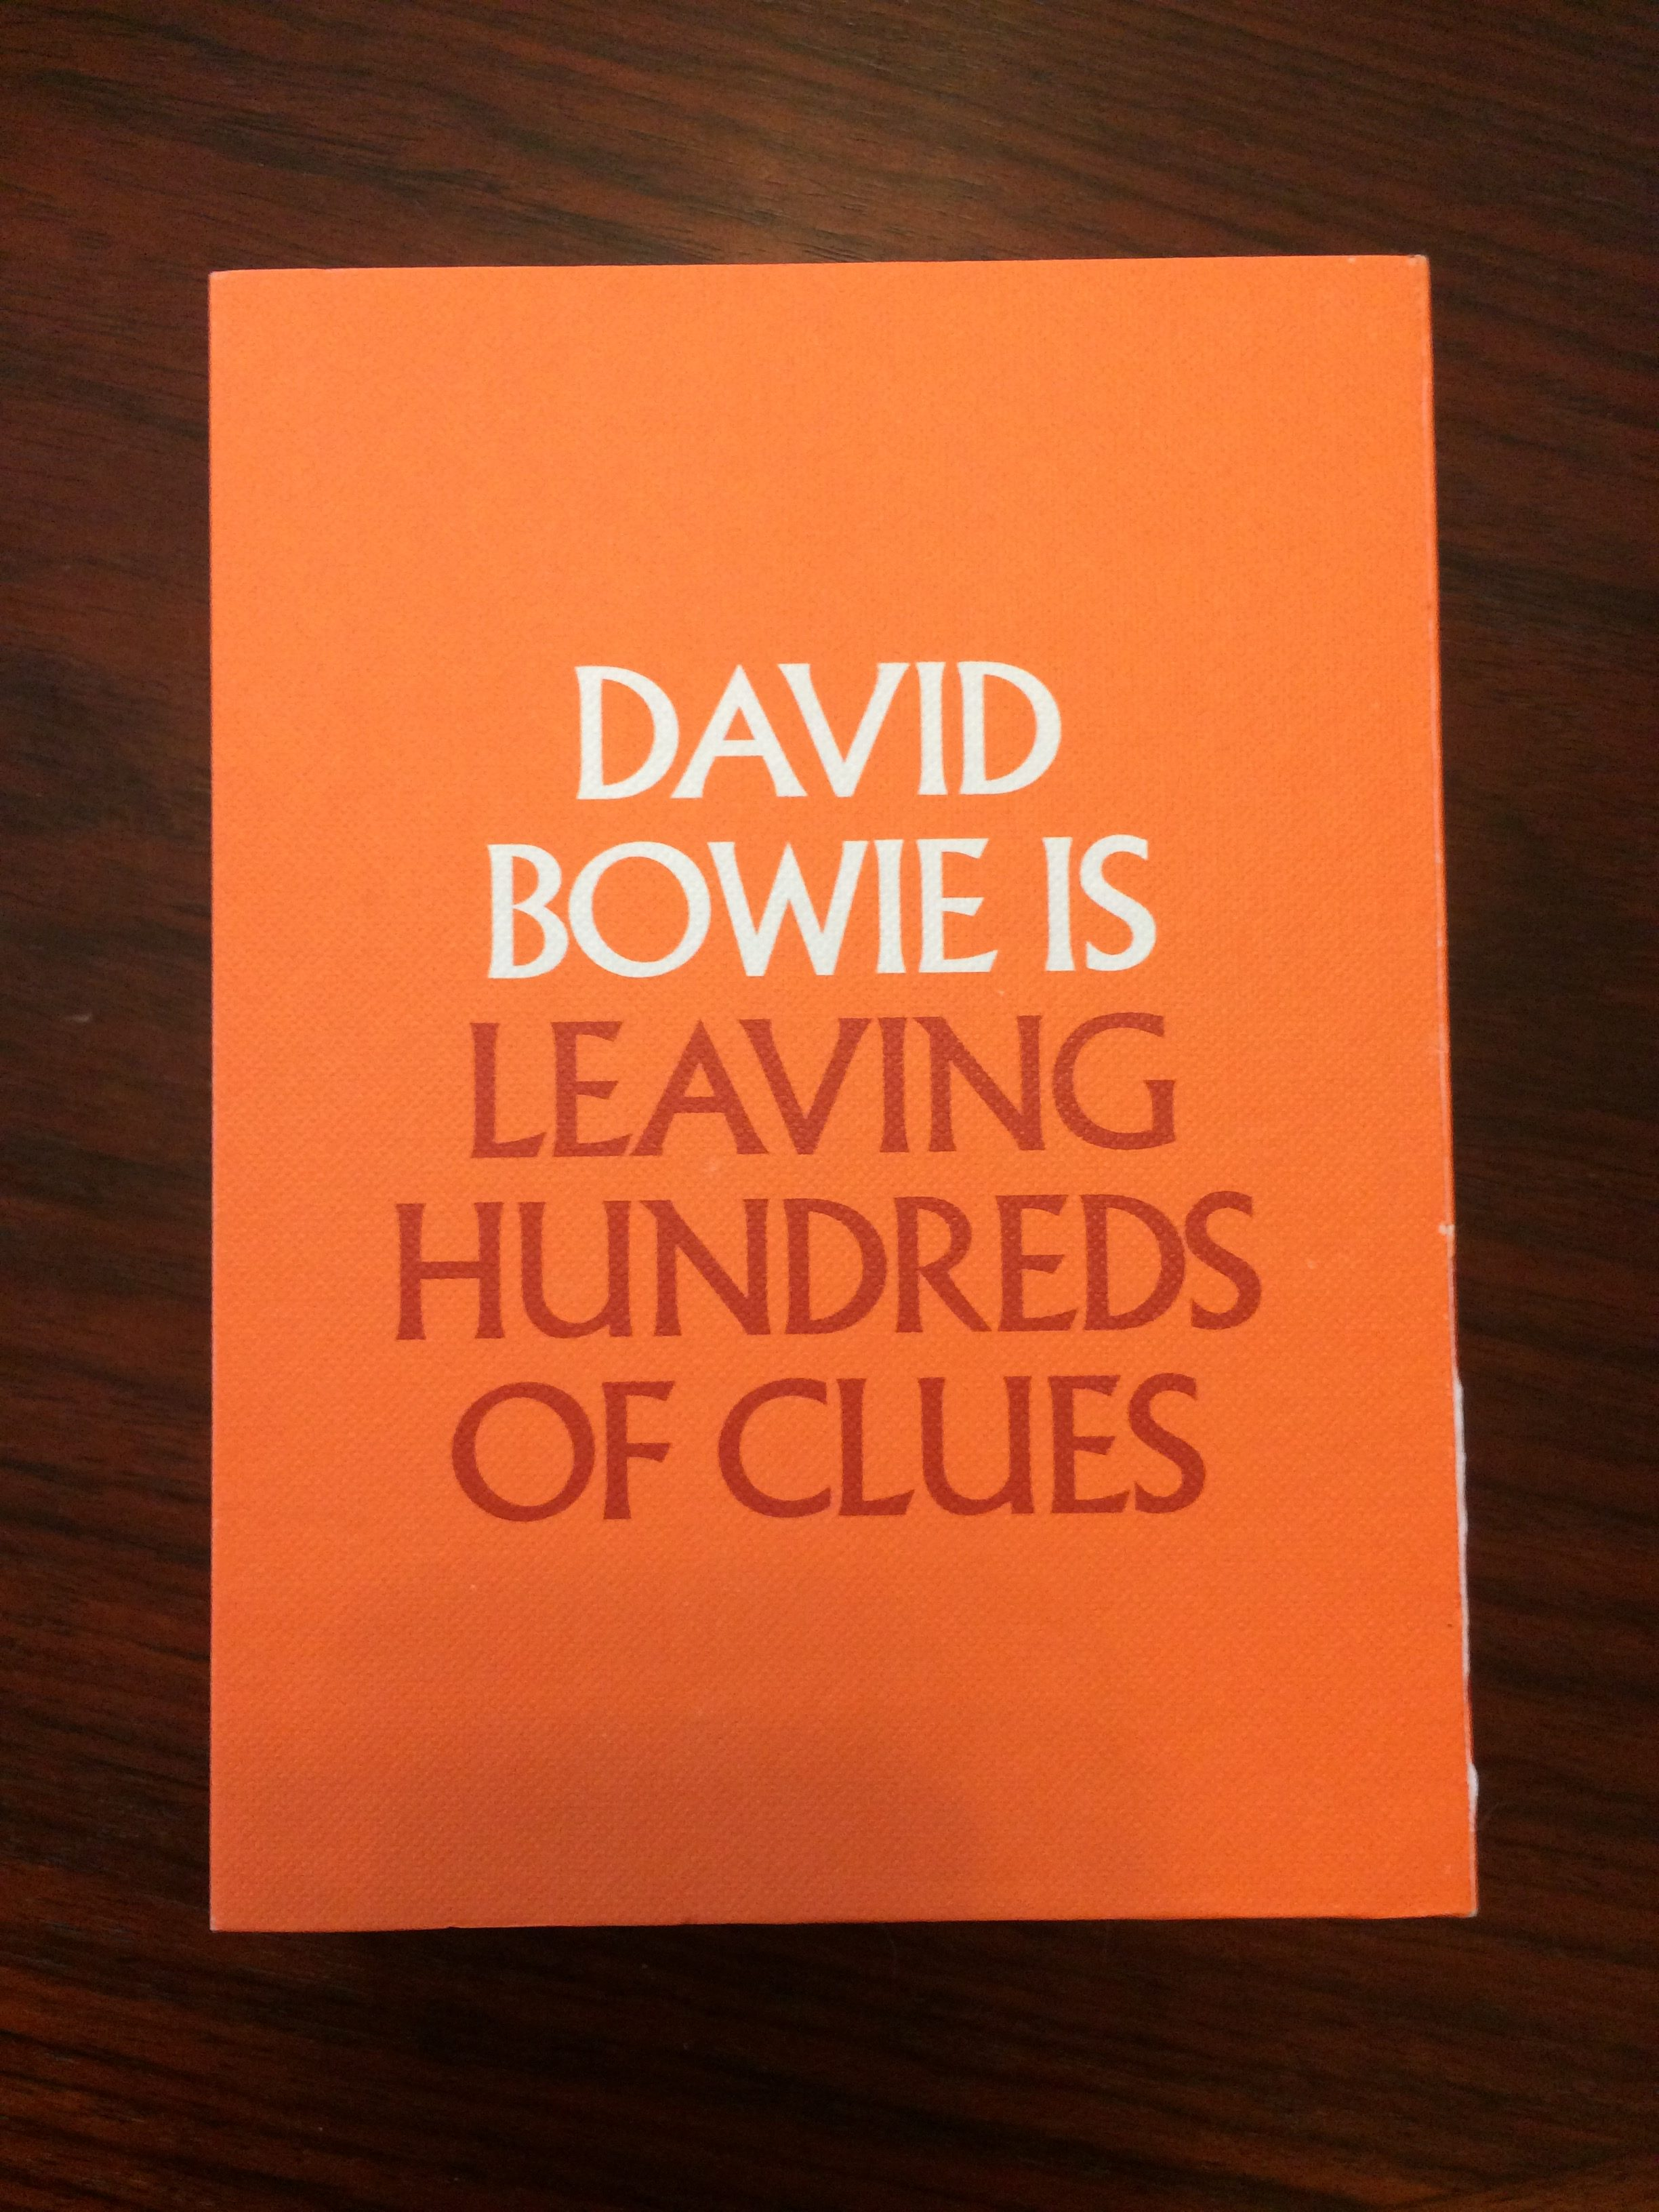 David Bowie Is Leaving Hundreds of Clues